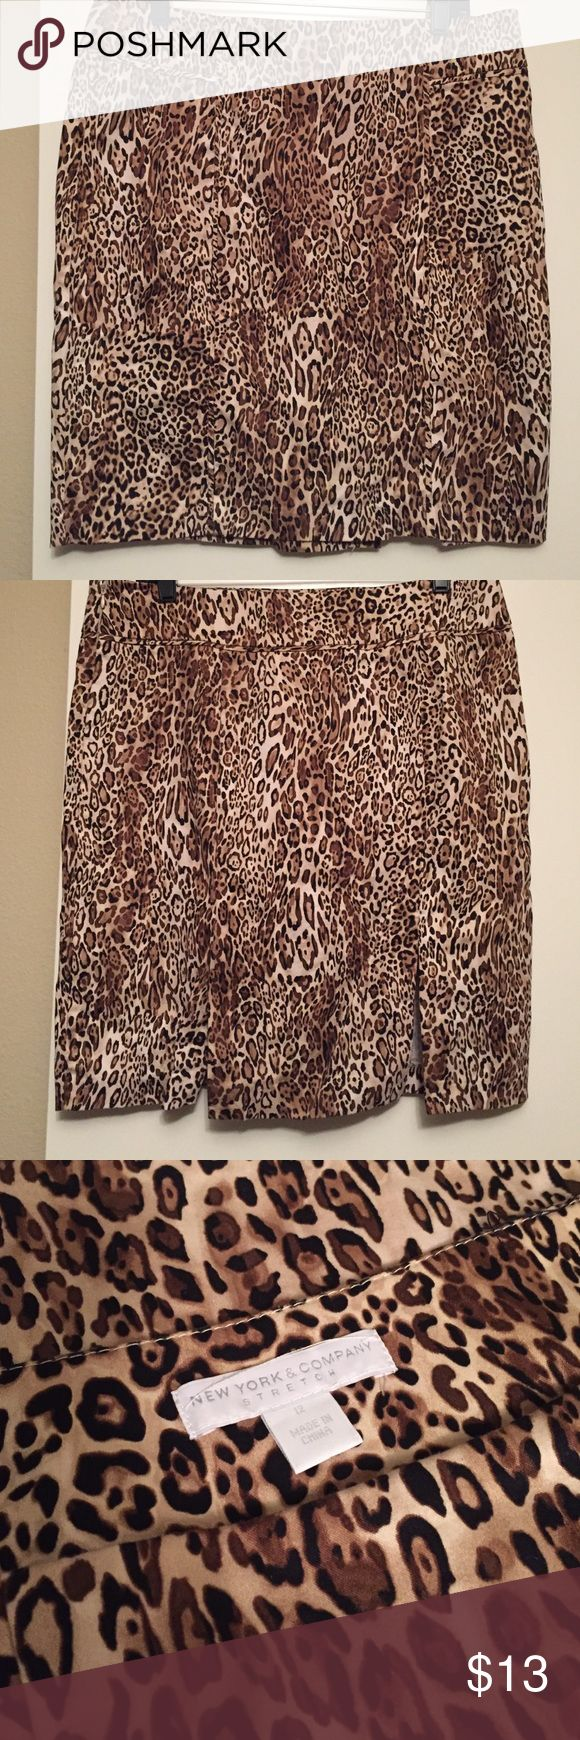 "New York & Co Cheetah Skirt Excellent condition! Unlined, double slit in back, side zipper. 21"" long. New York & Company Skirts Pencil"